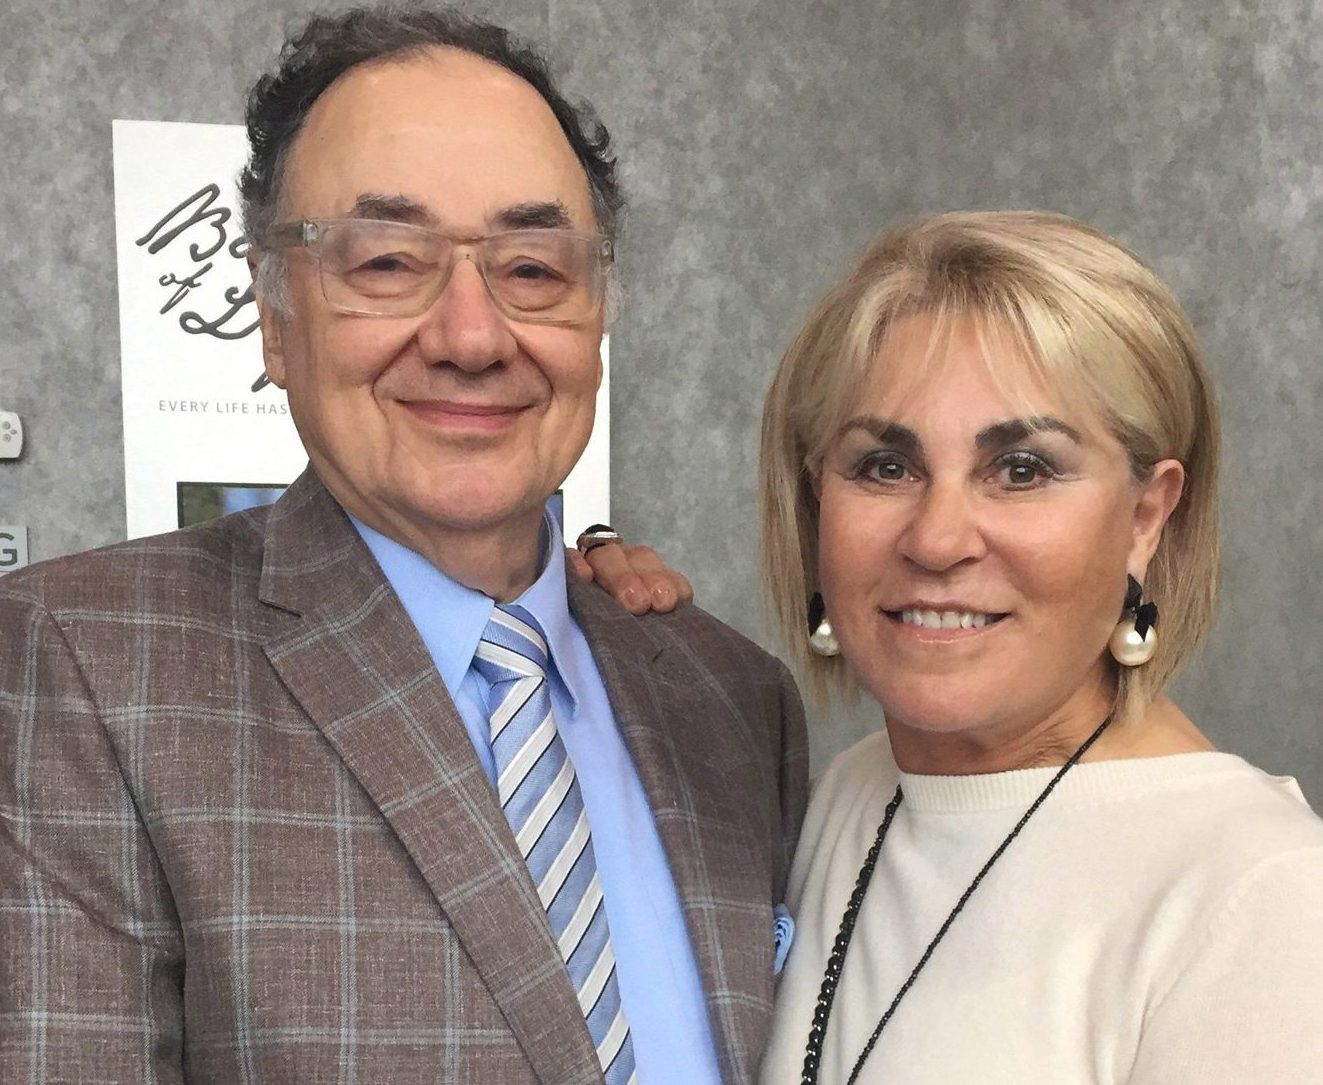 Barry and Honey Sherman were murdered by multiple killers, private investigators believe